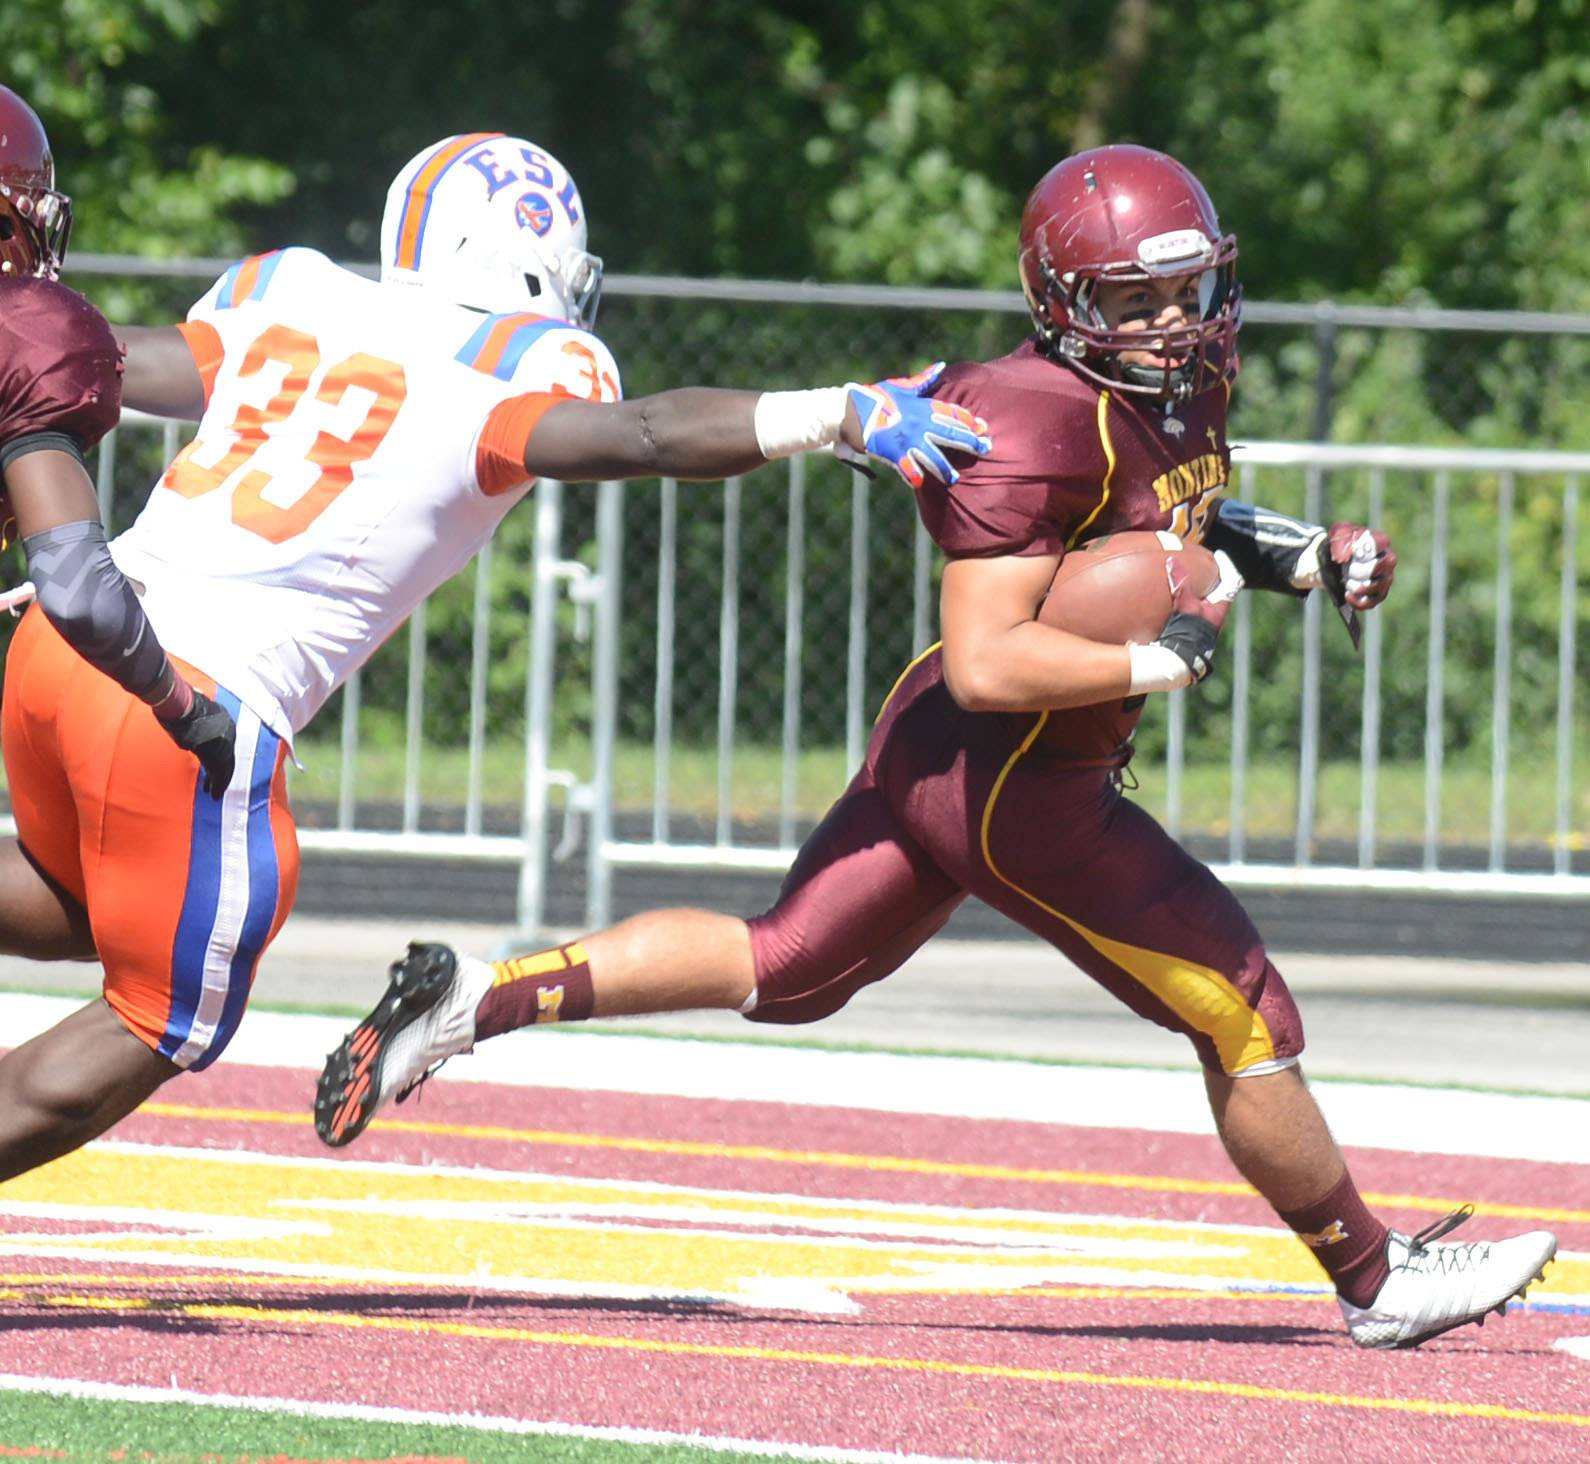 Samuel Asta of Montini scores while Jerod Robinson of East St. Louis chases during Saturday's game in Lombard.